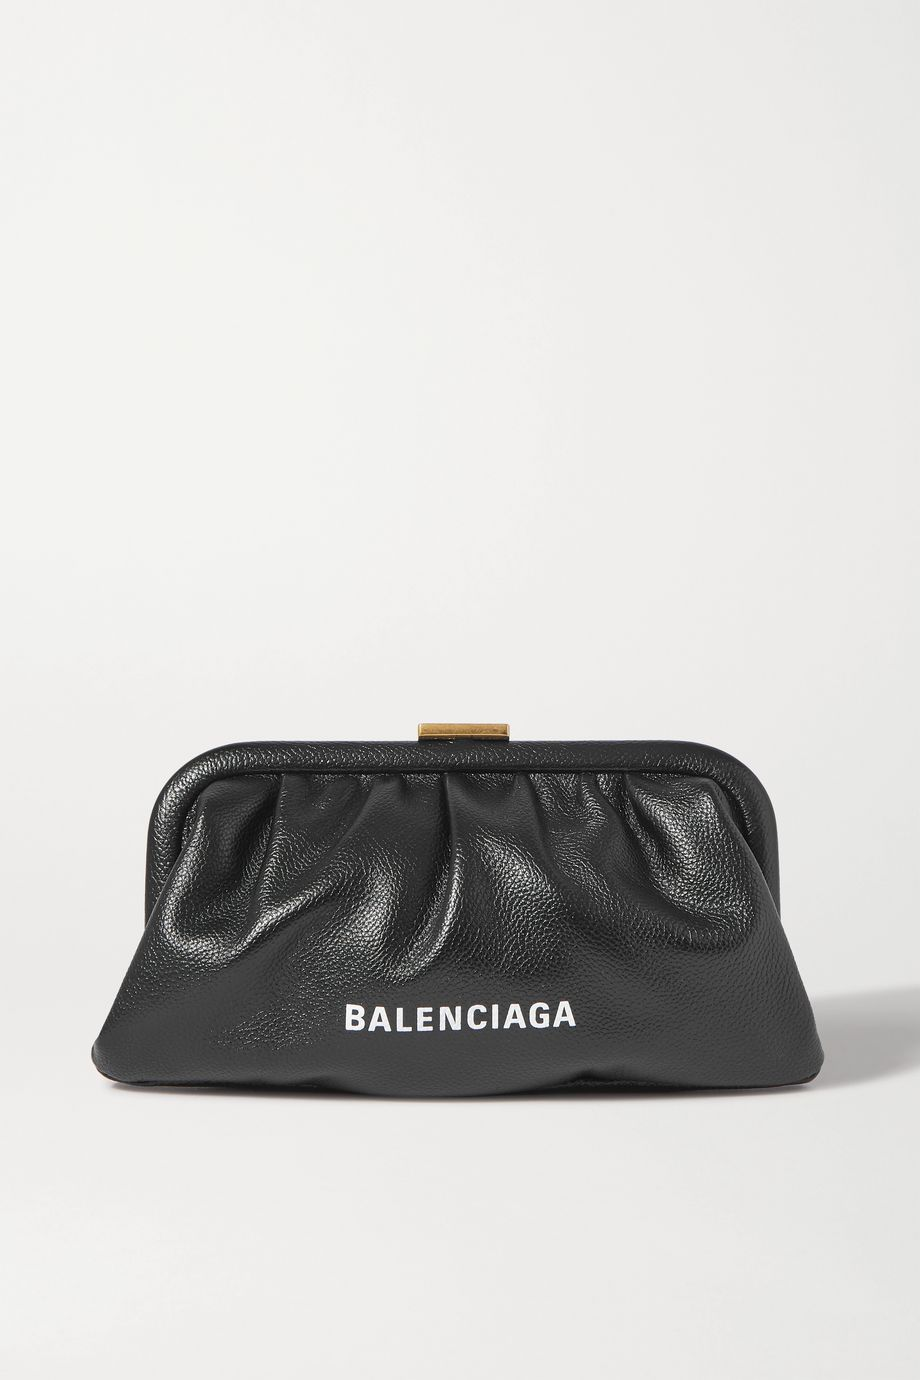 Balenciaga Cloud small printed textured-leather clutch